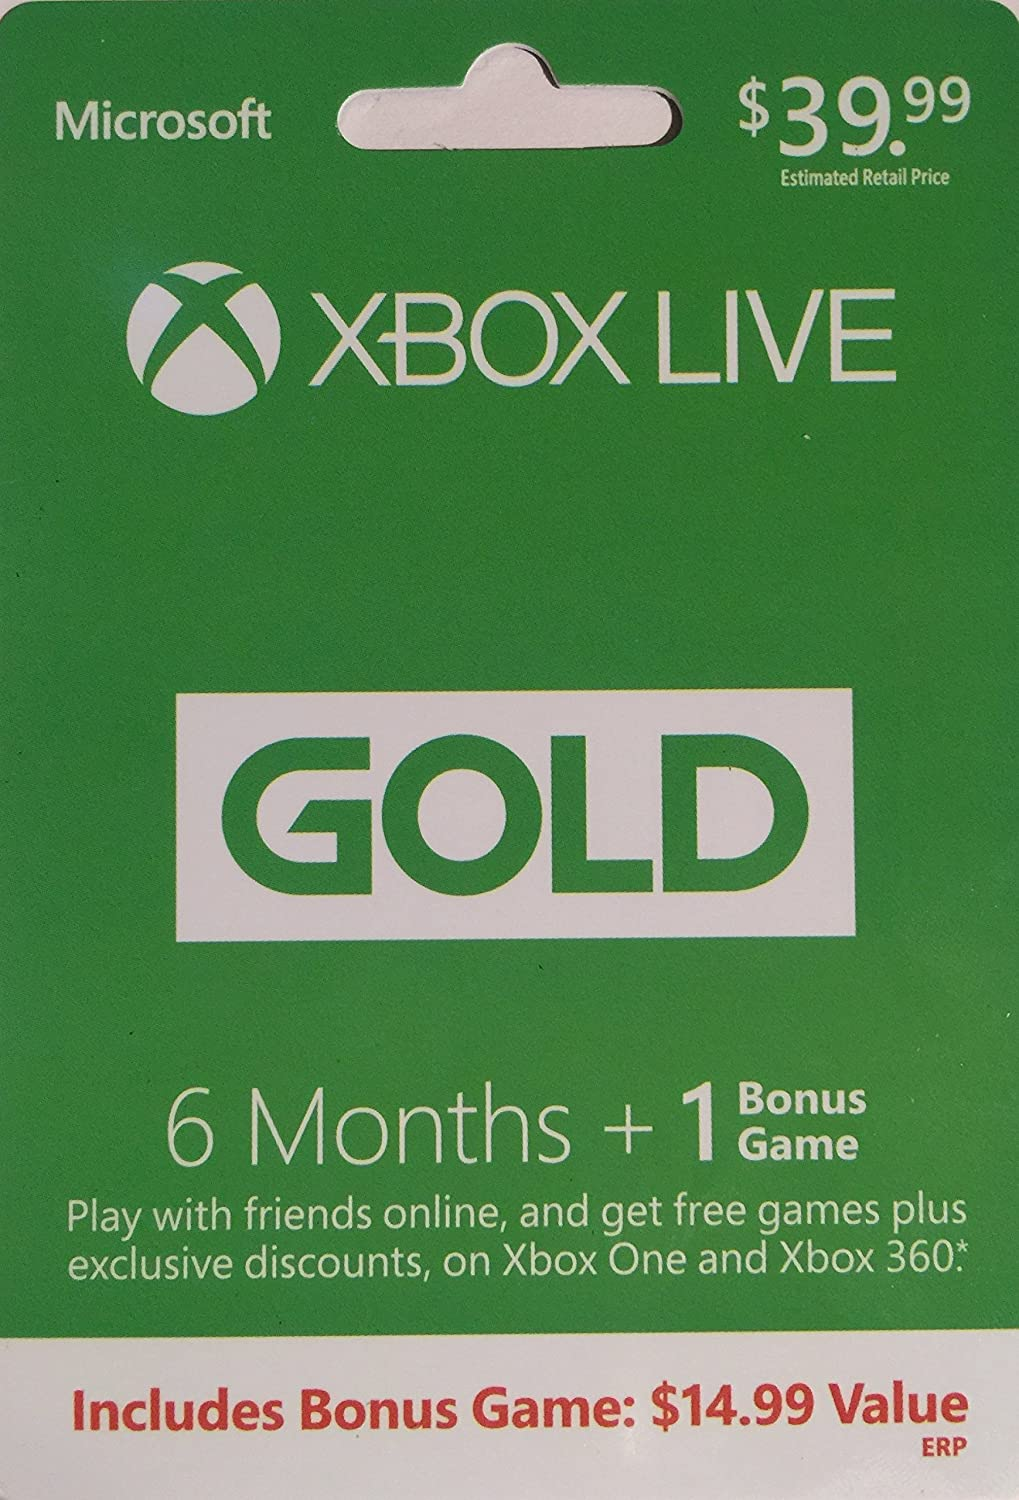 Microsoft Xbox Live 6 Months + 1 Bonus Game Gold Card (Physical Card) for Xbox One and Xbox 360